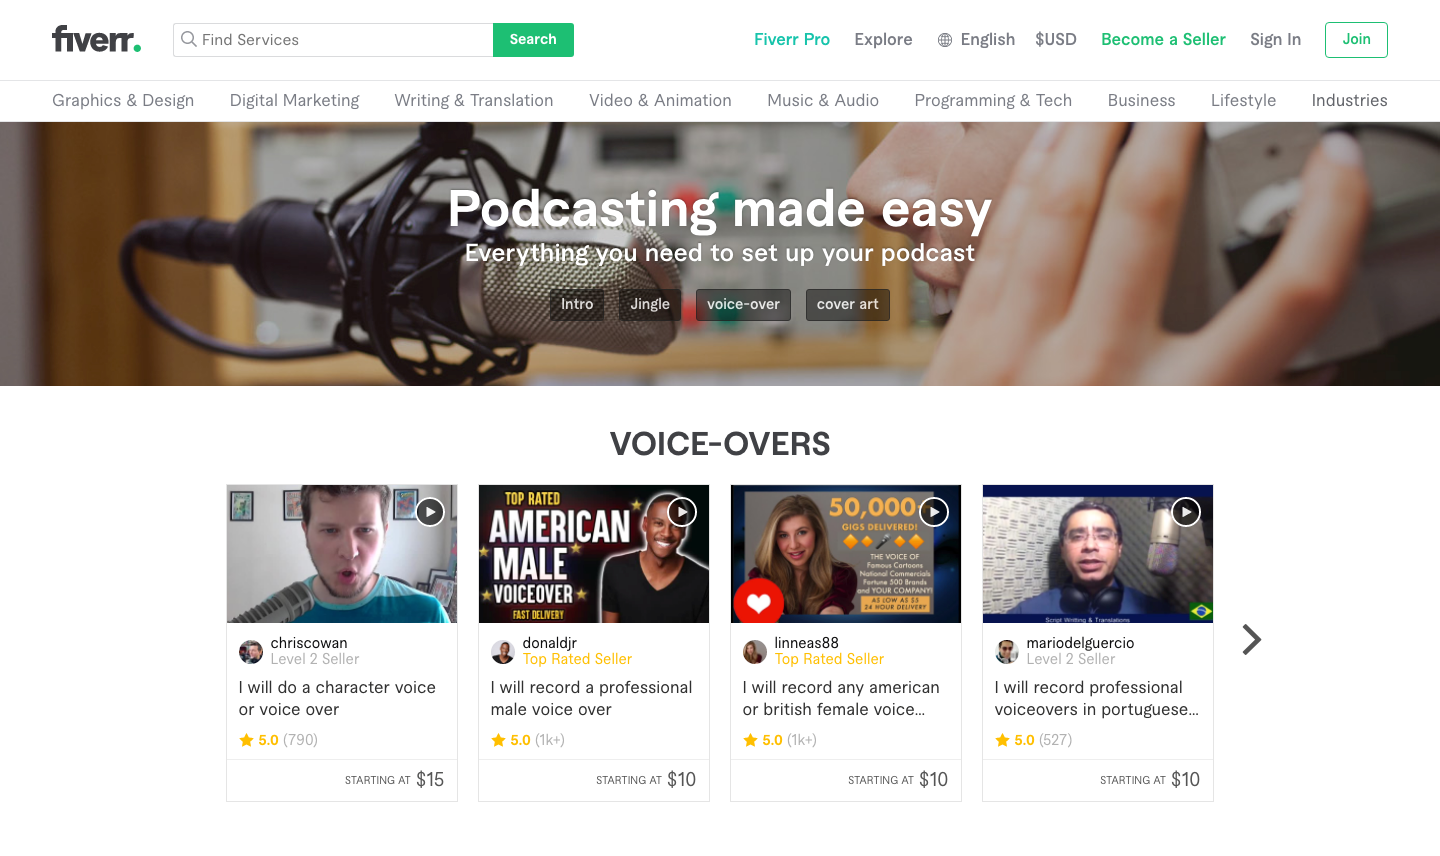 Fiverr Podcast